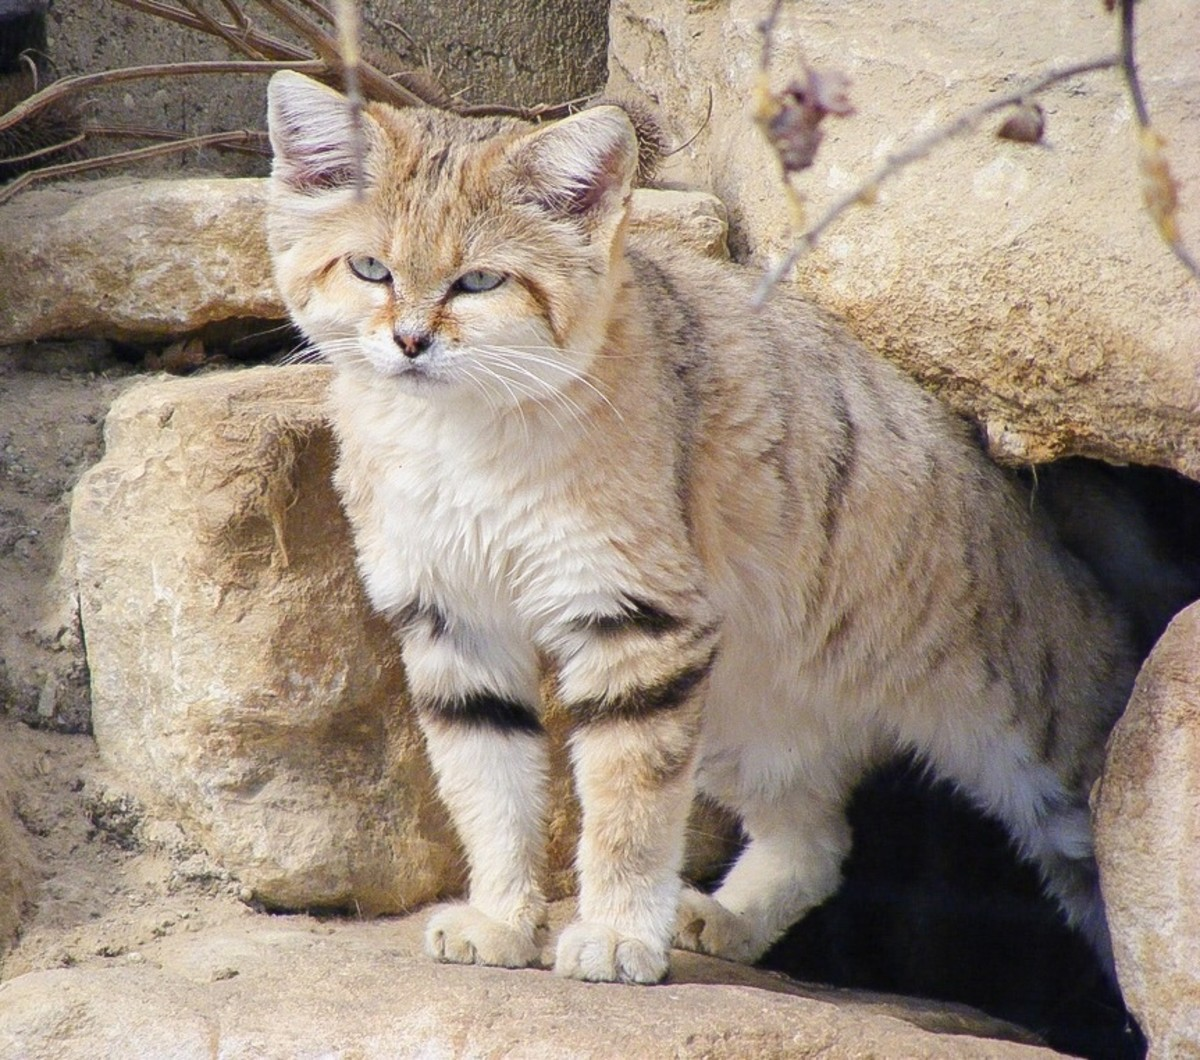 sand cat desert animal cats african animals wild pets facts exotic foxes fennec golden asian plants